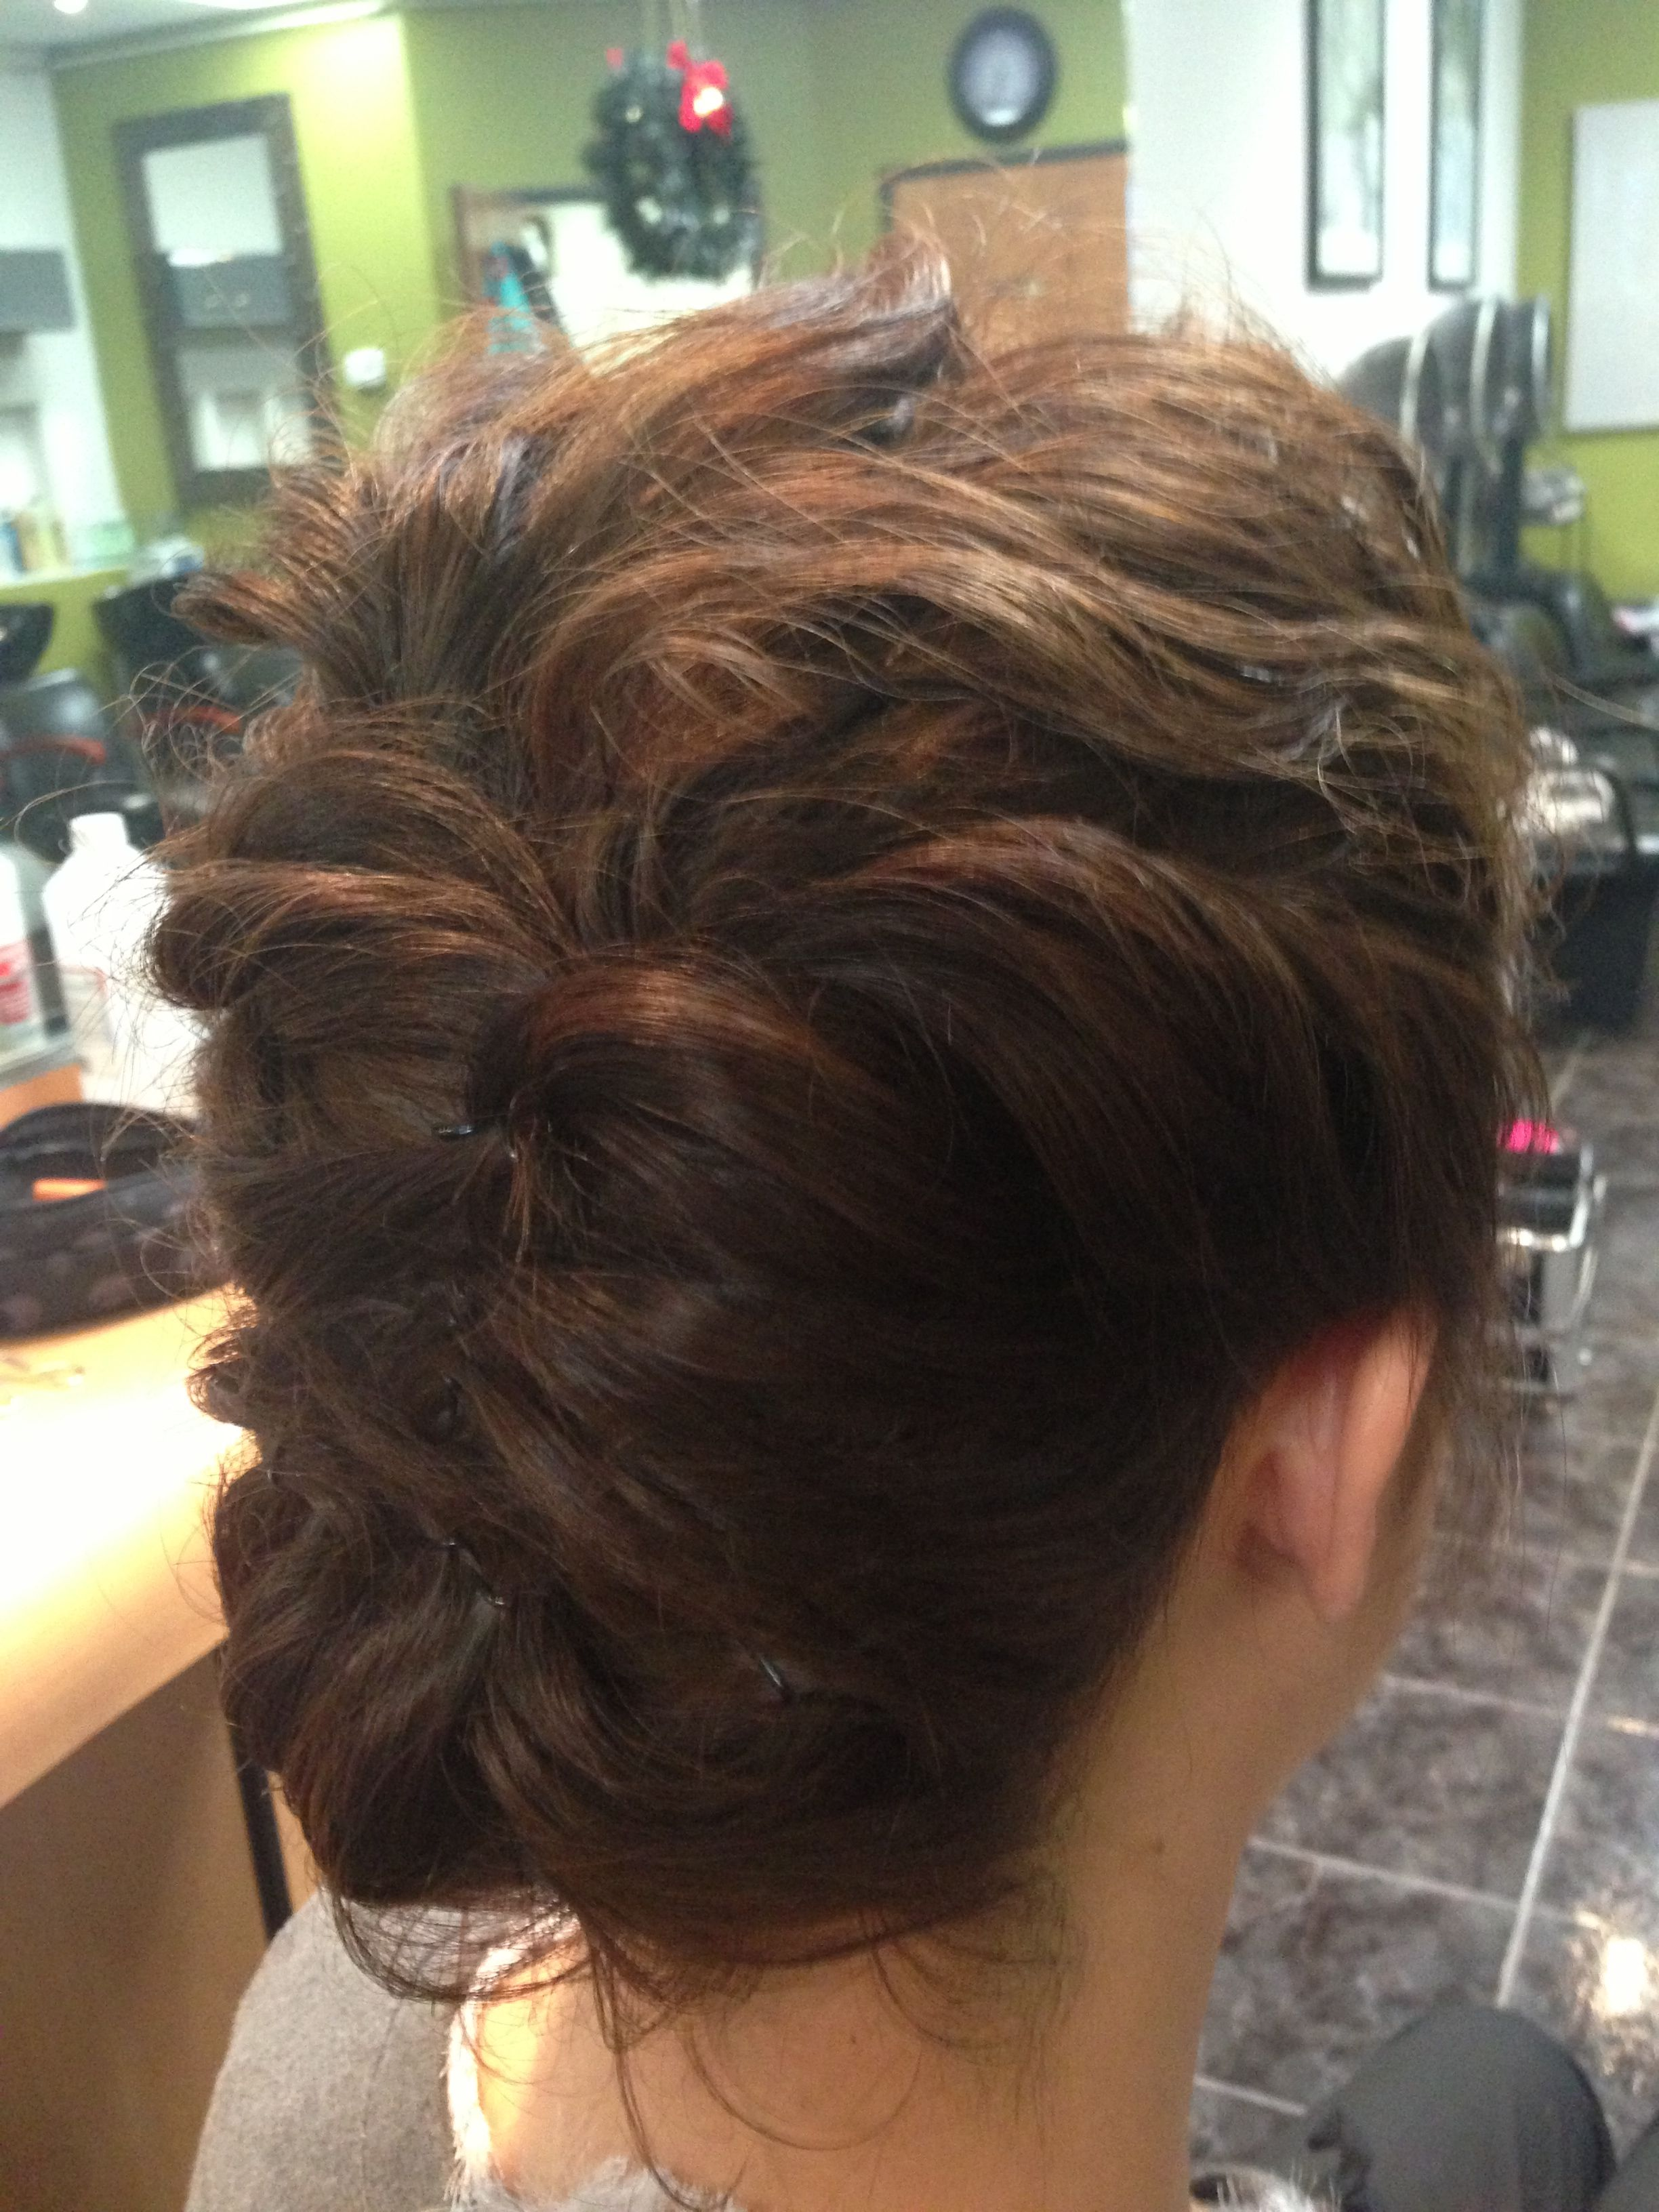 Wedding updo wedding hair updotextured updo short hair updo bob